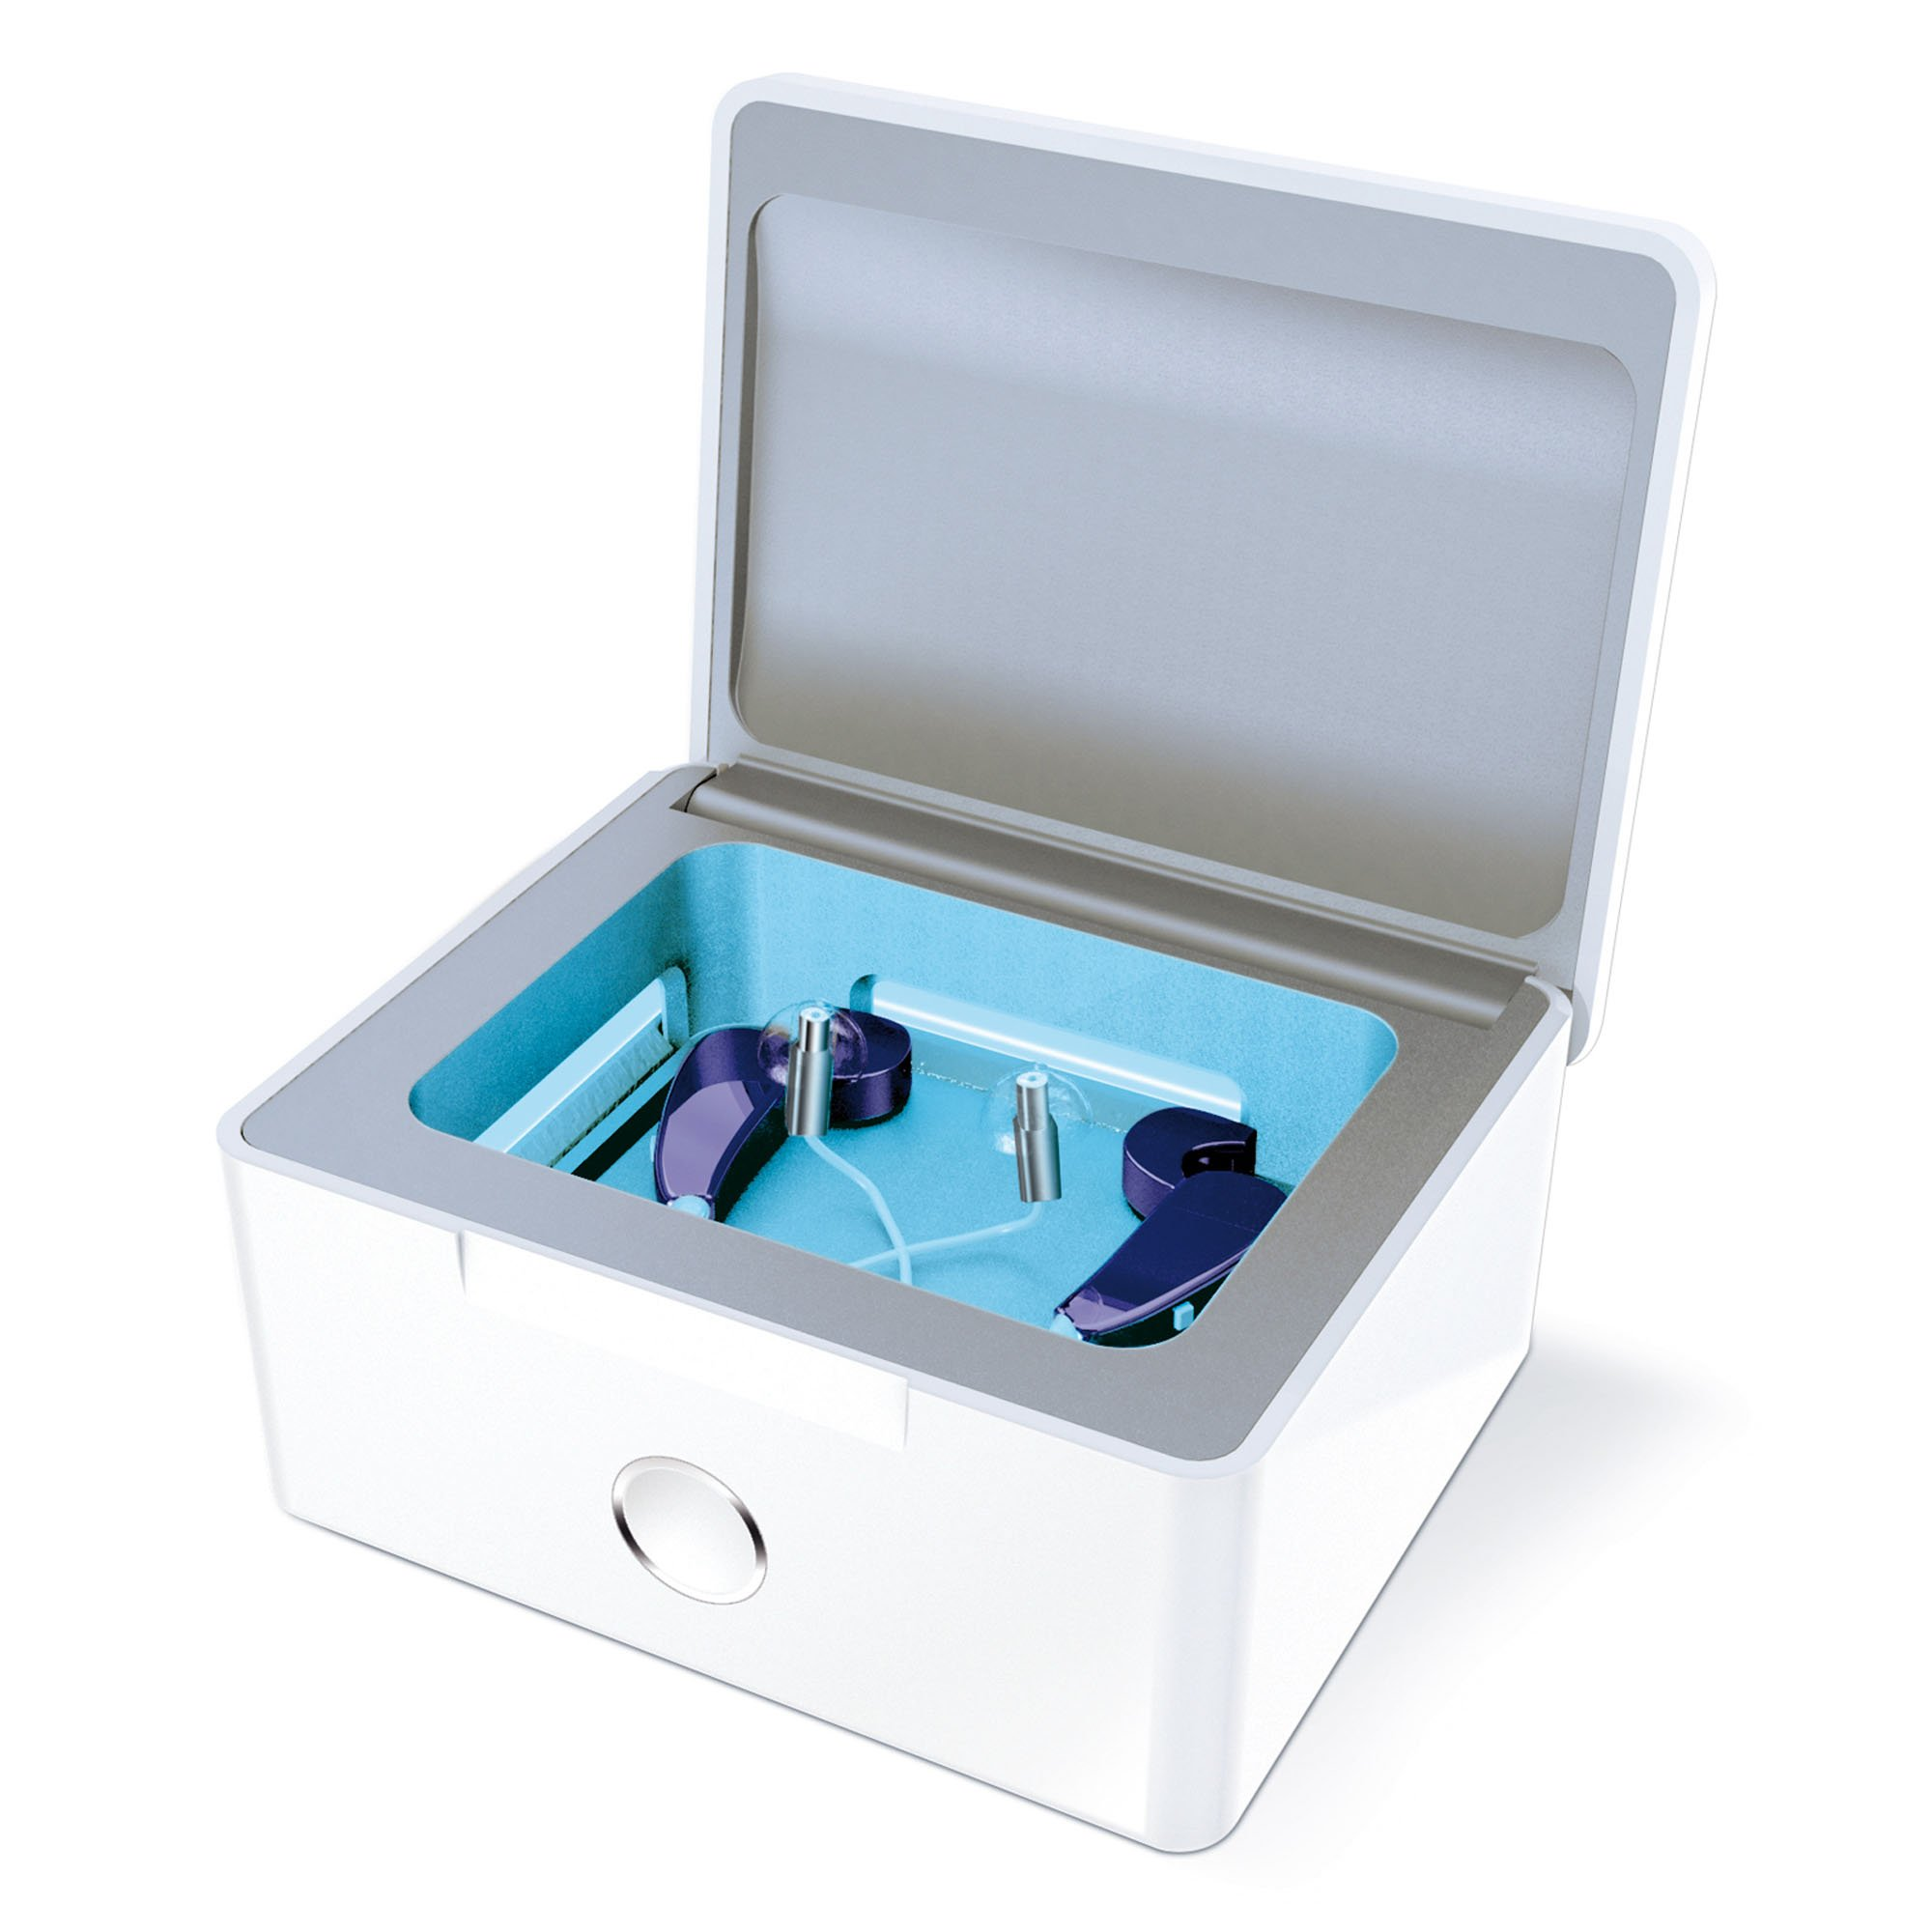 Quest Perfectdry LUX Automatic Hearing Aid UV-C Disinfecting and Cleaning System by Quest